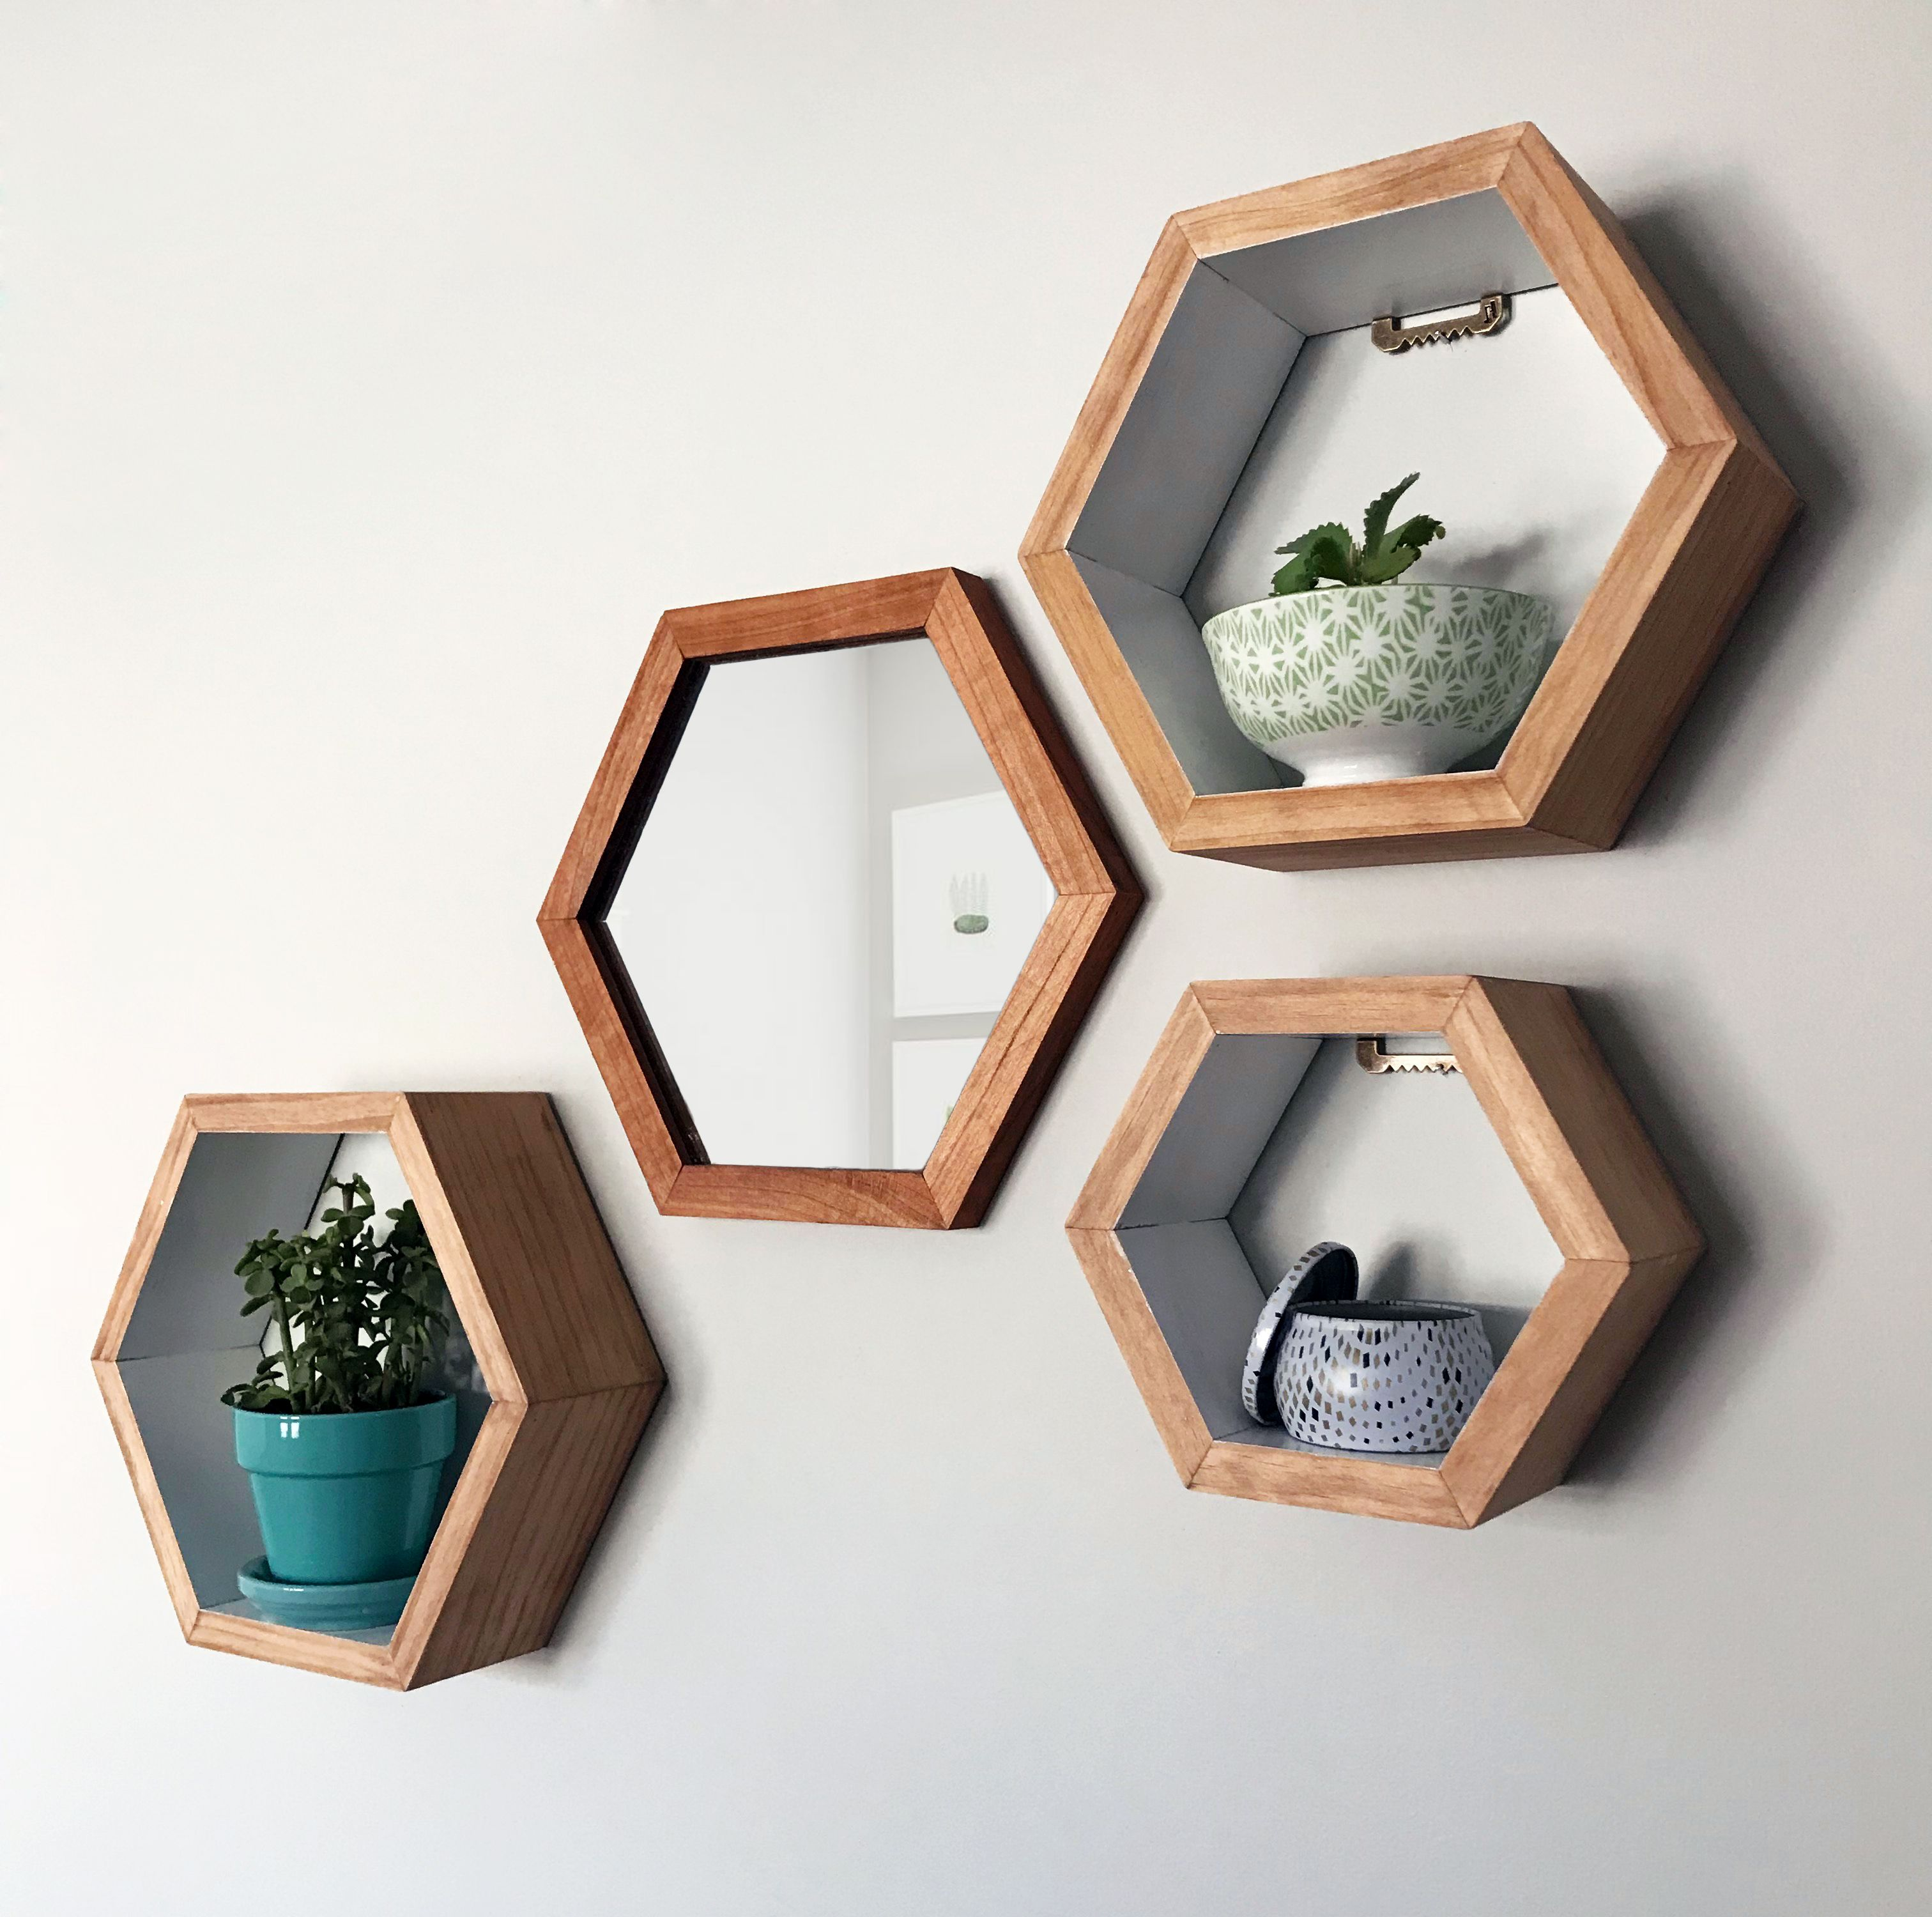 Cherry Wood Hexagon Mirror Paired With Hexagon Shelves With A White Interior Available On Etsy By Taute Hexagon Shelves Geometric Shelves Wood Hexagon